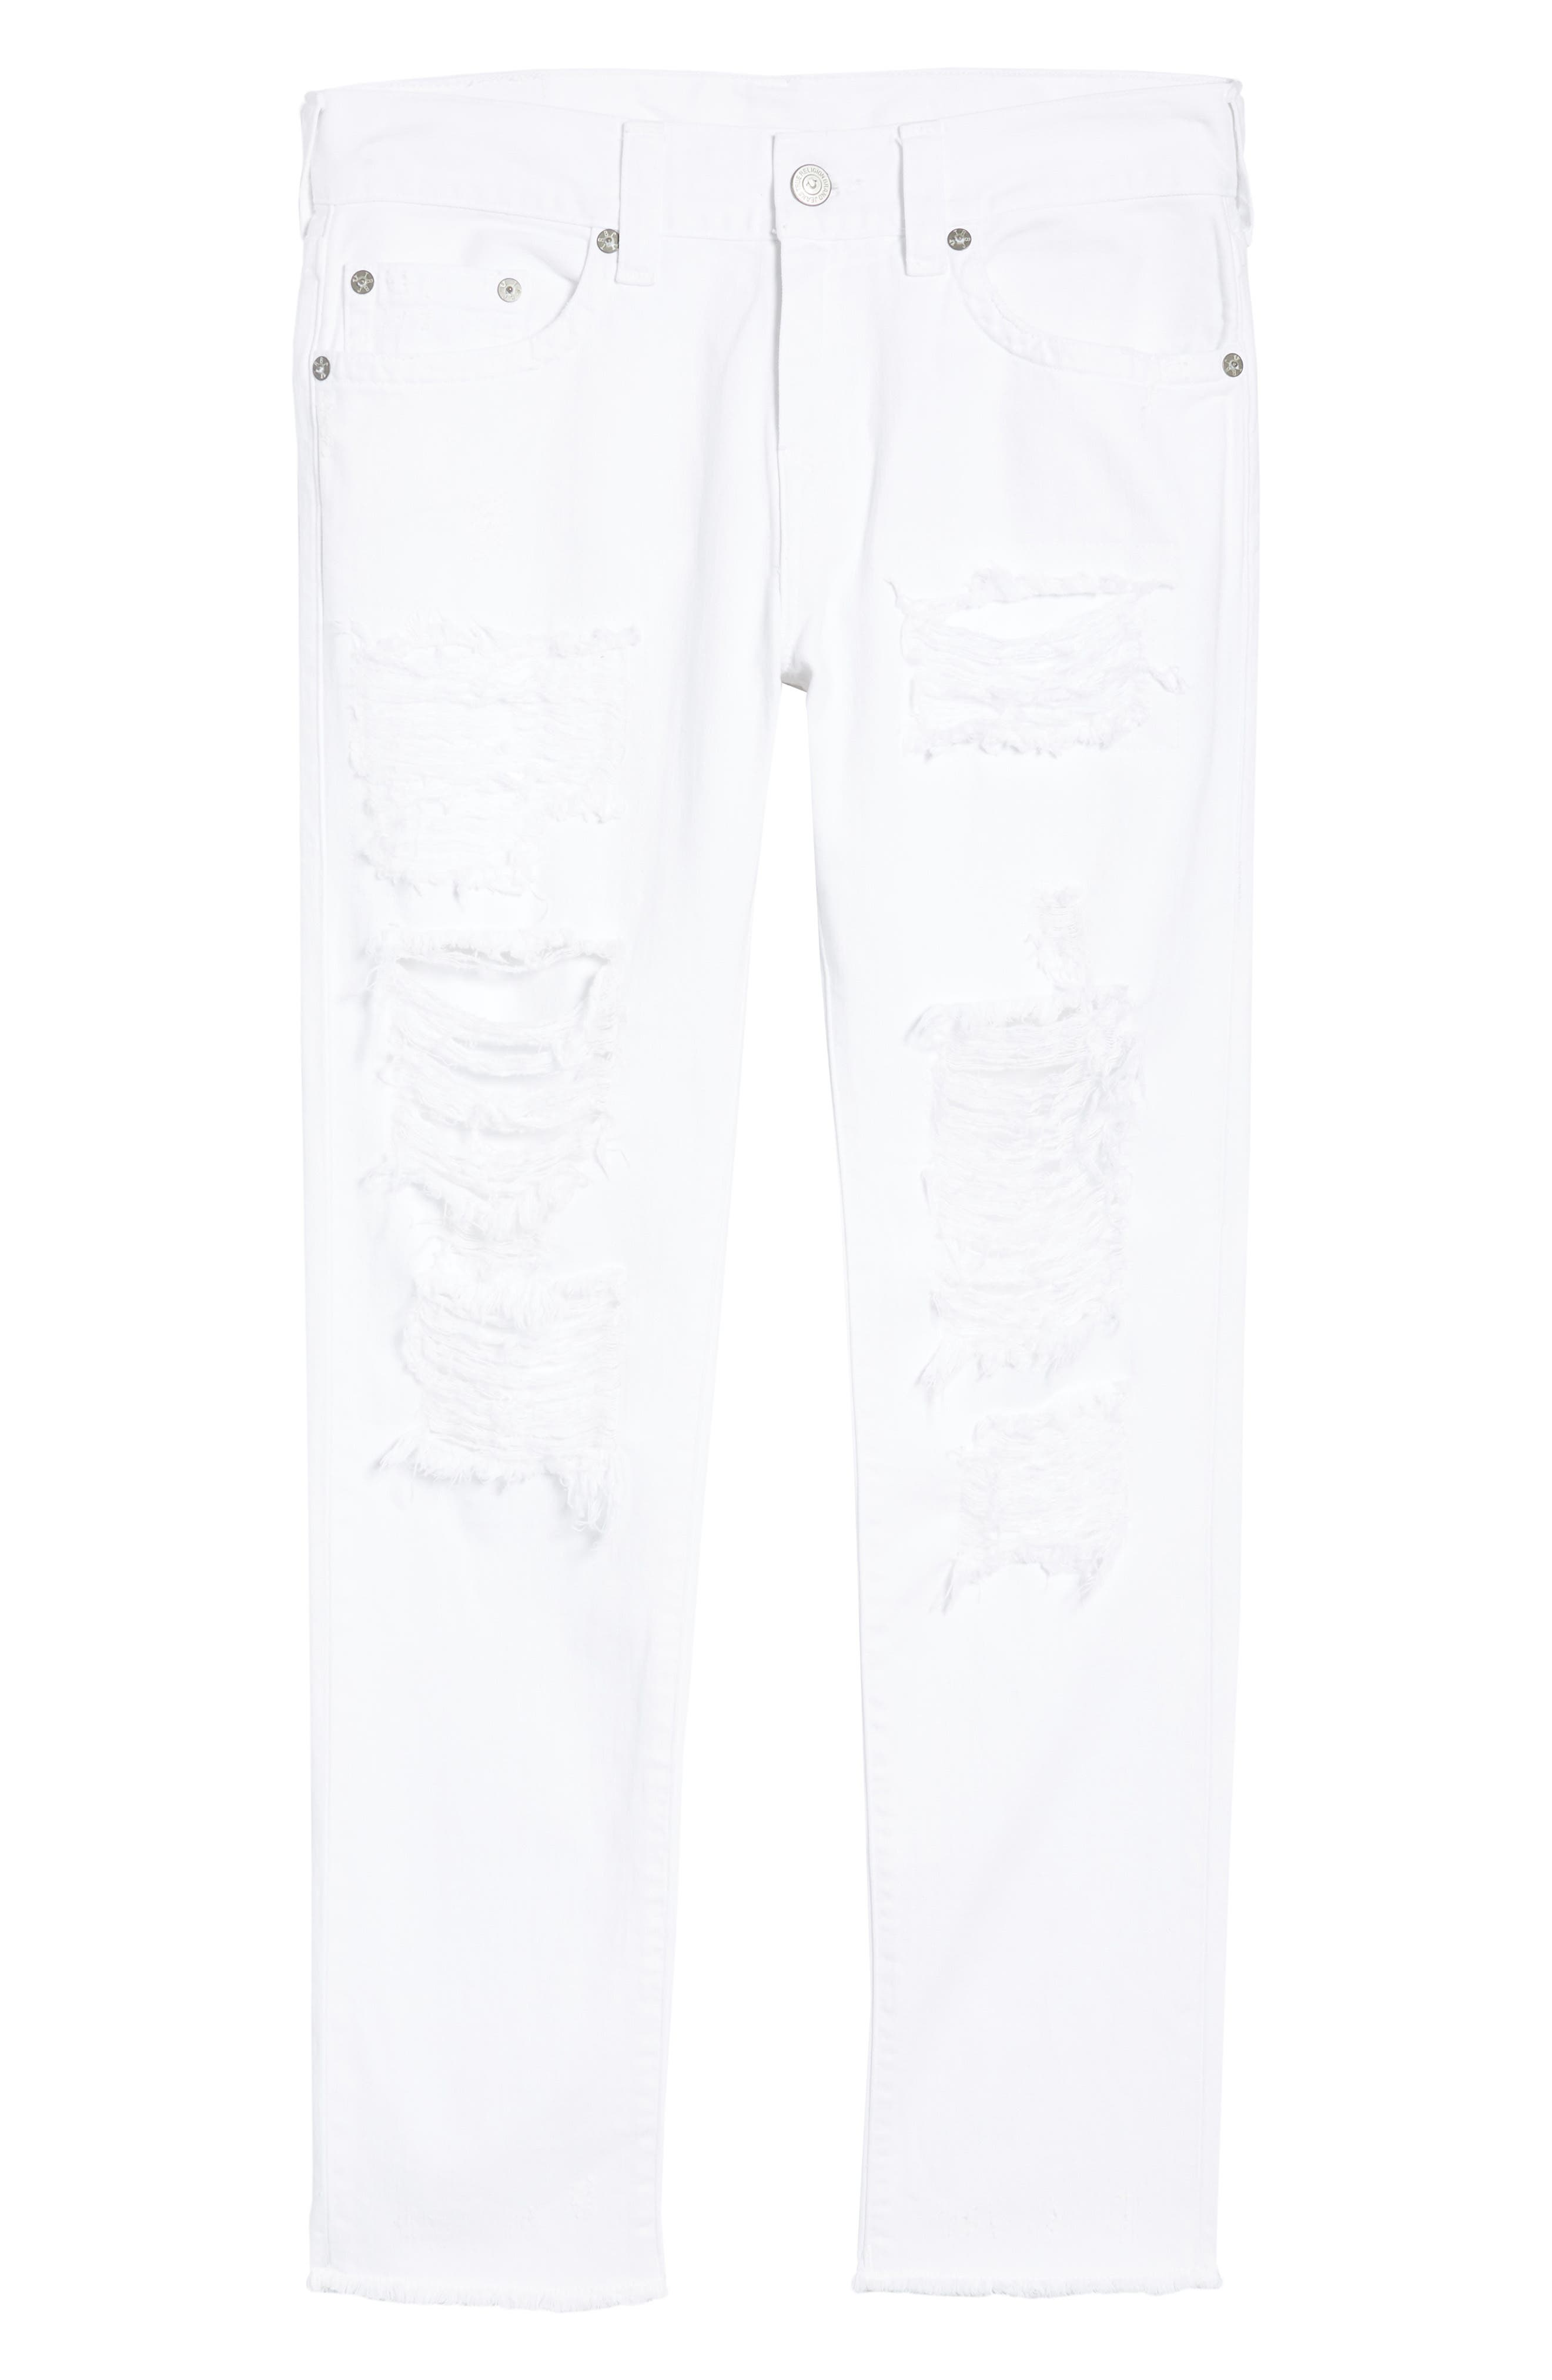 Rocco Skinny Fit jeans,                             Alternate thumbnail 5, color,                             White Volcanic Ash